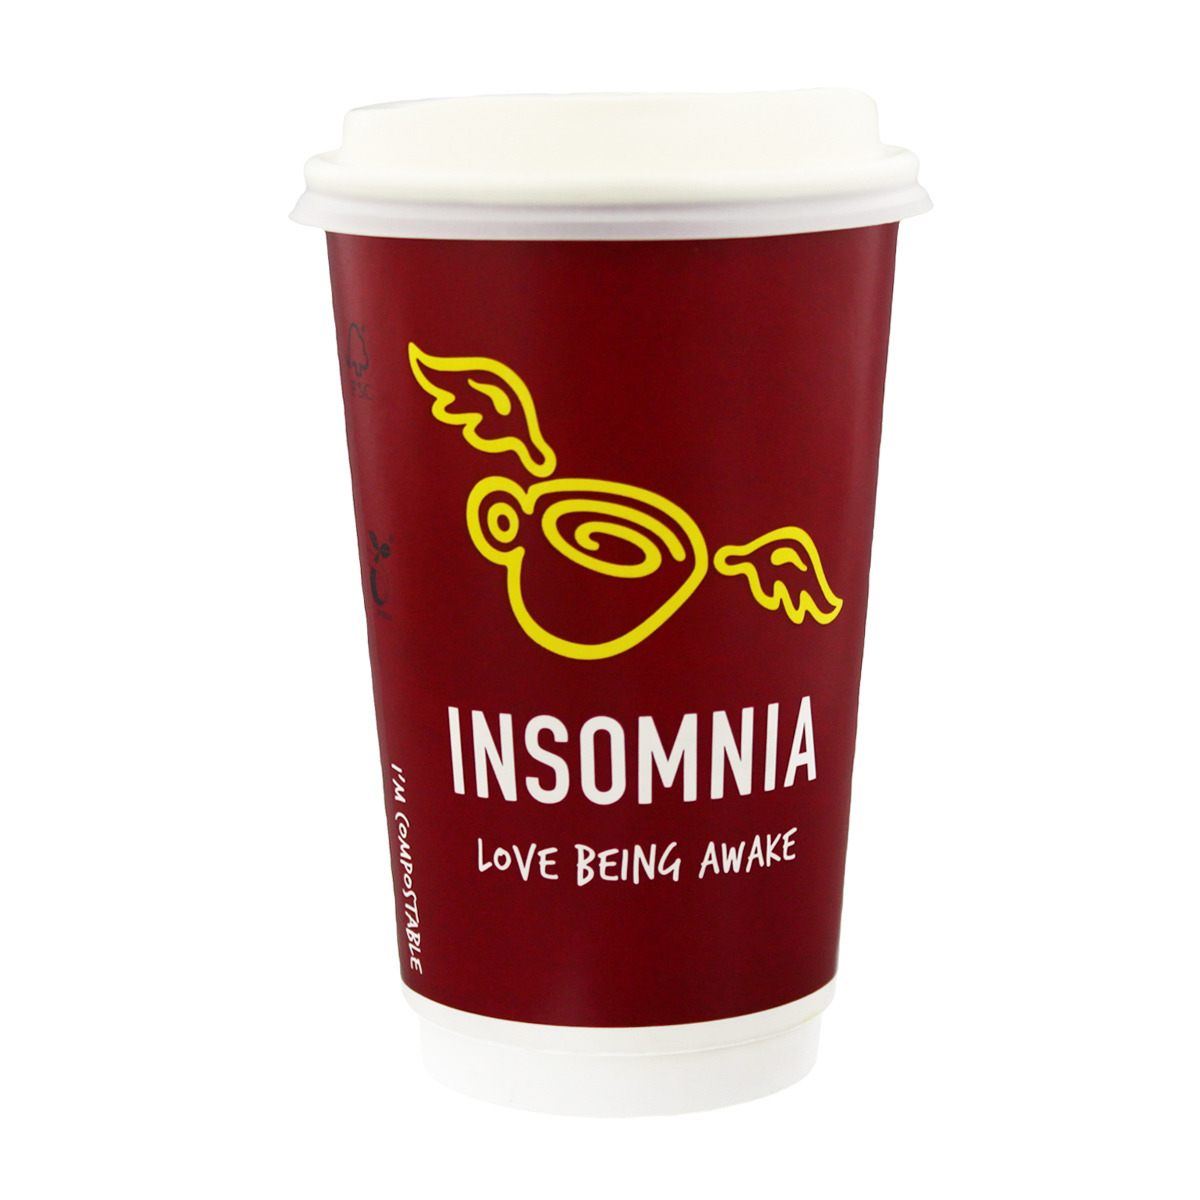 Insomnia Compostable Coffee Cup